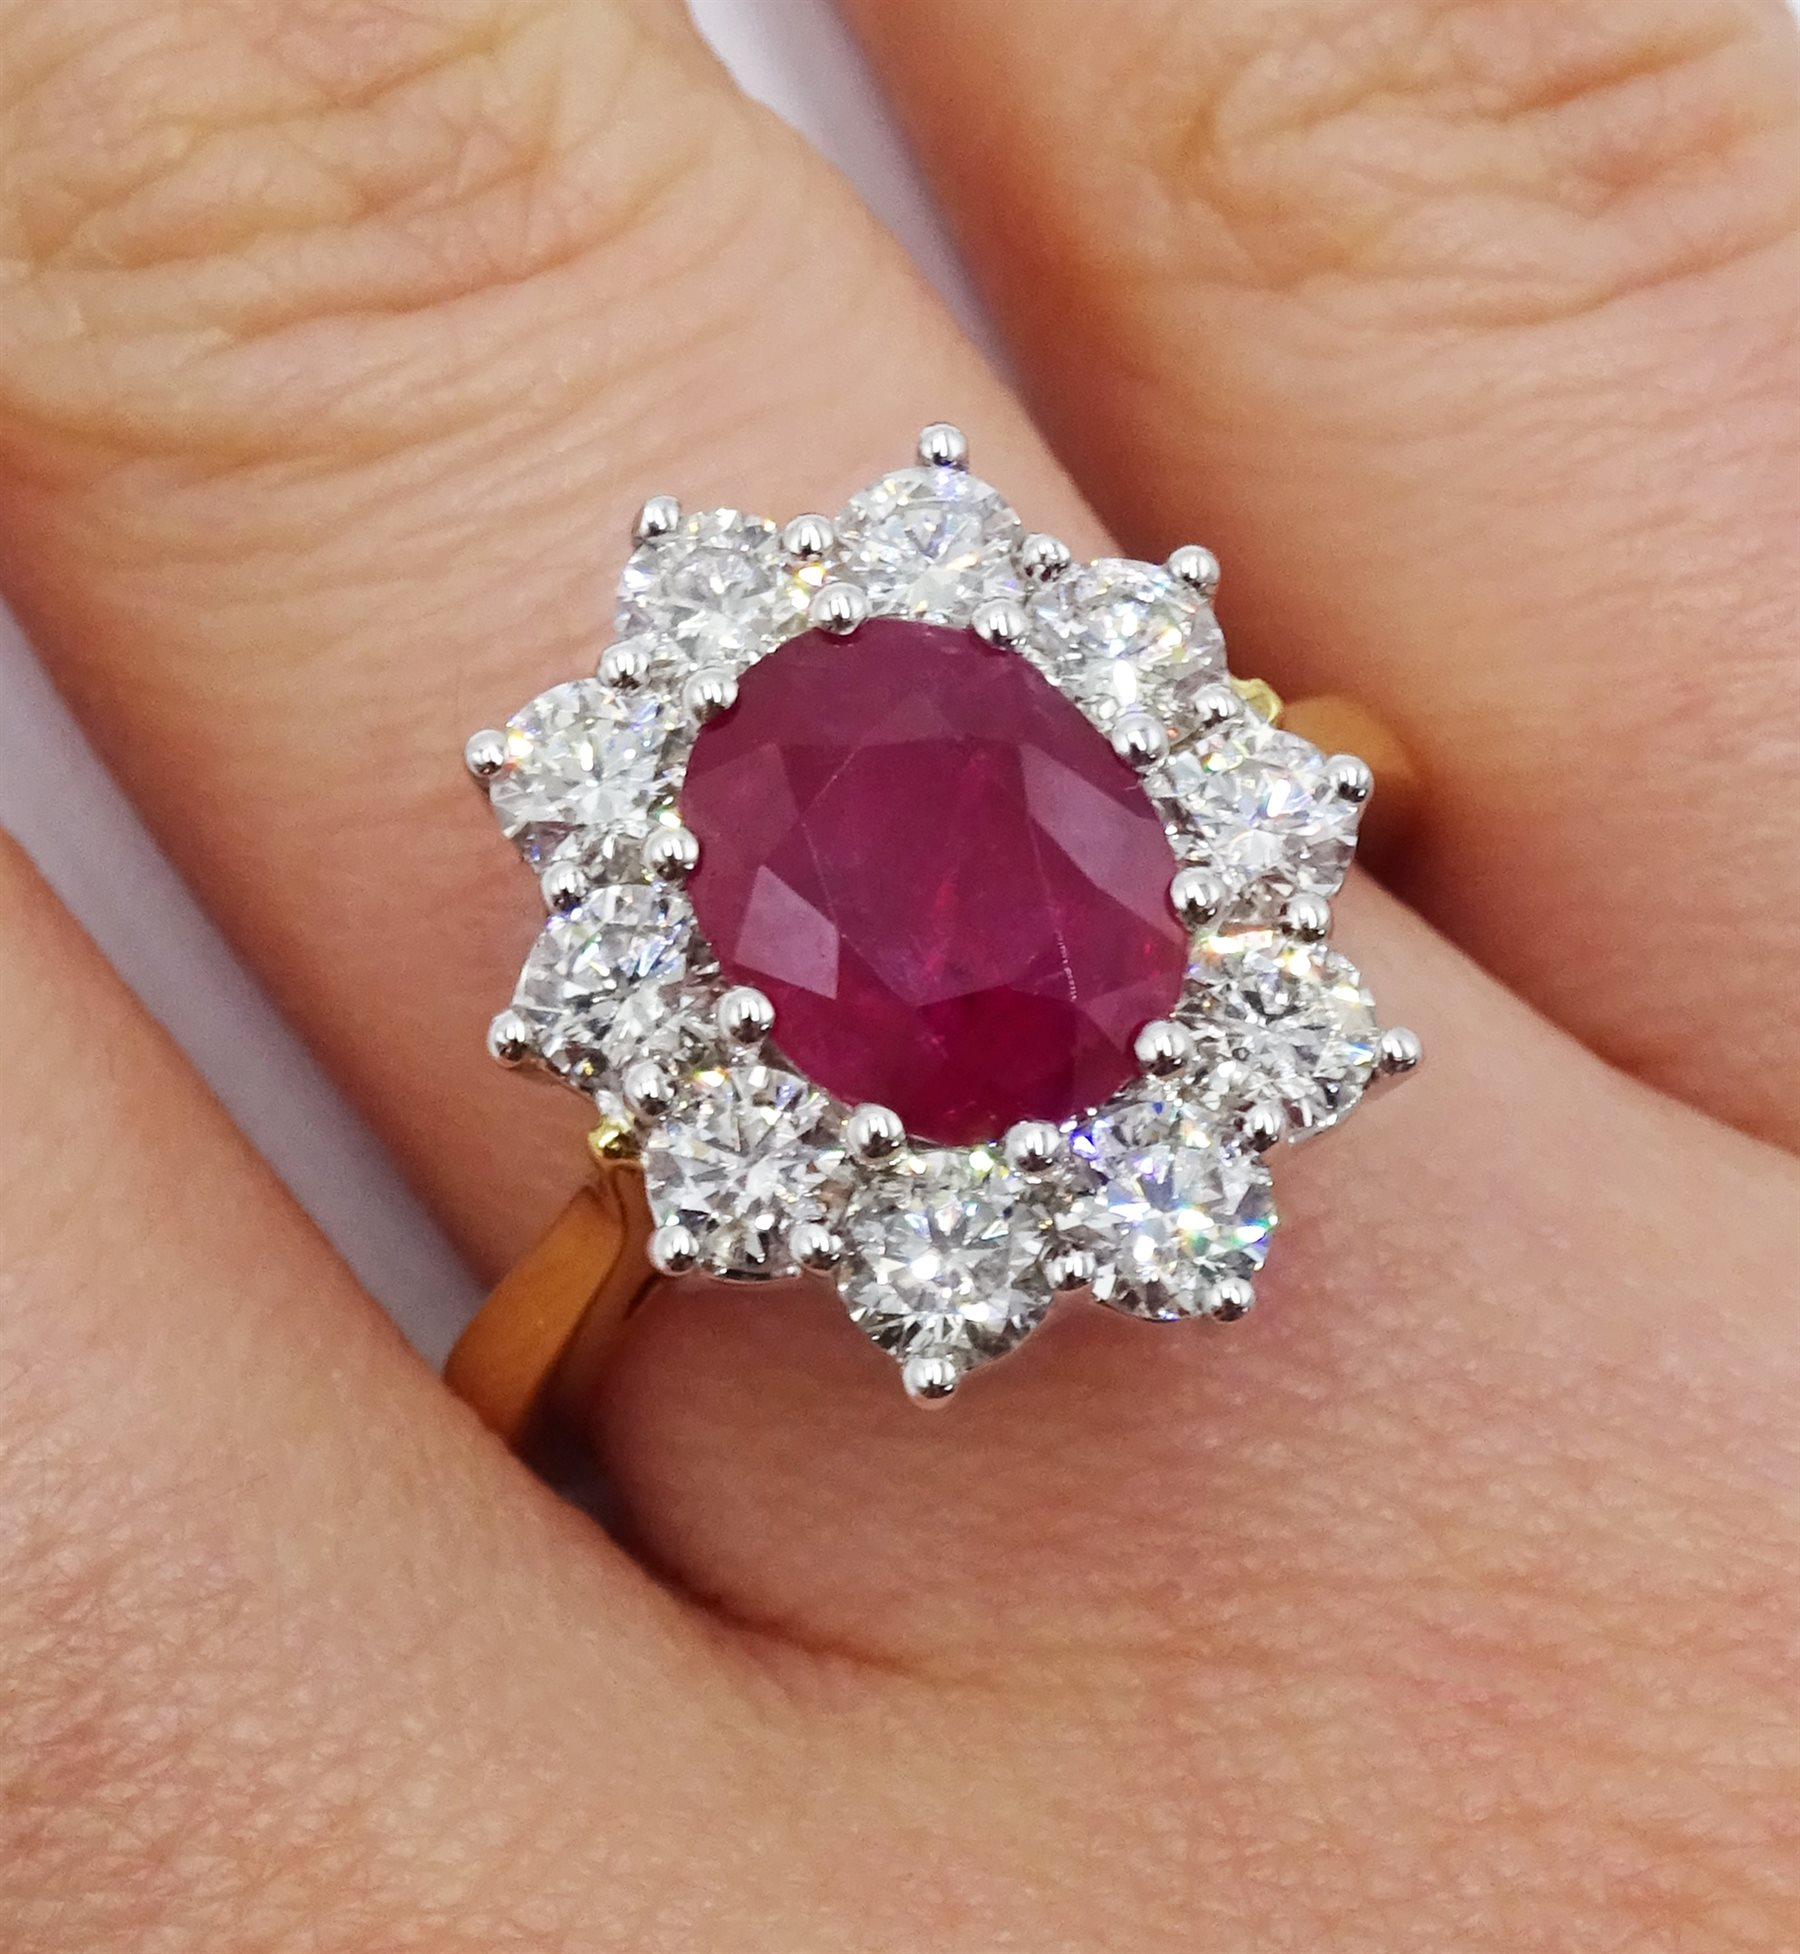 18ct gold oval ruby and round brilliant cut diamond cluster ring - Image 2 of 5